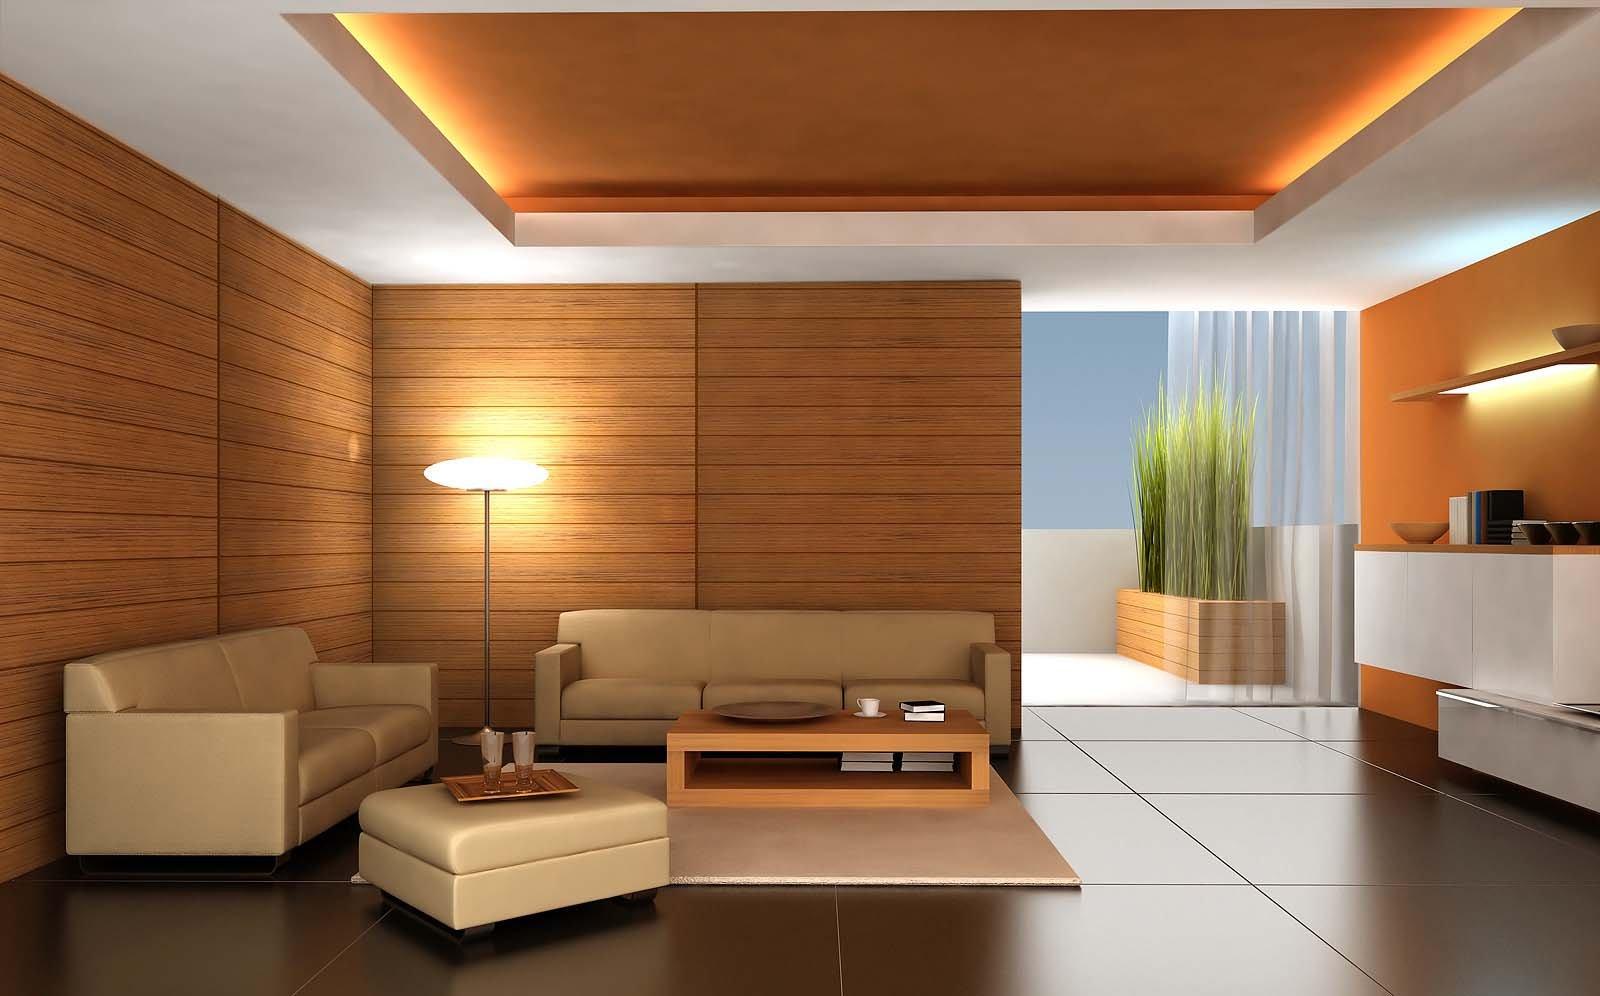 whether-wood-plastic-wall-panel-will-swell-for-a-long-time